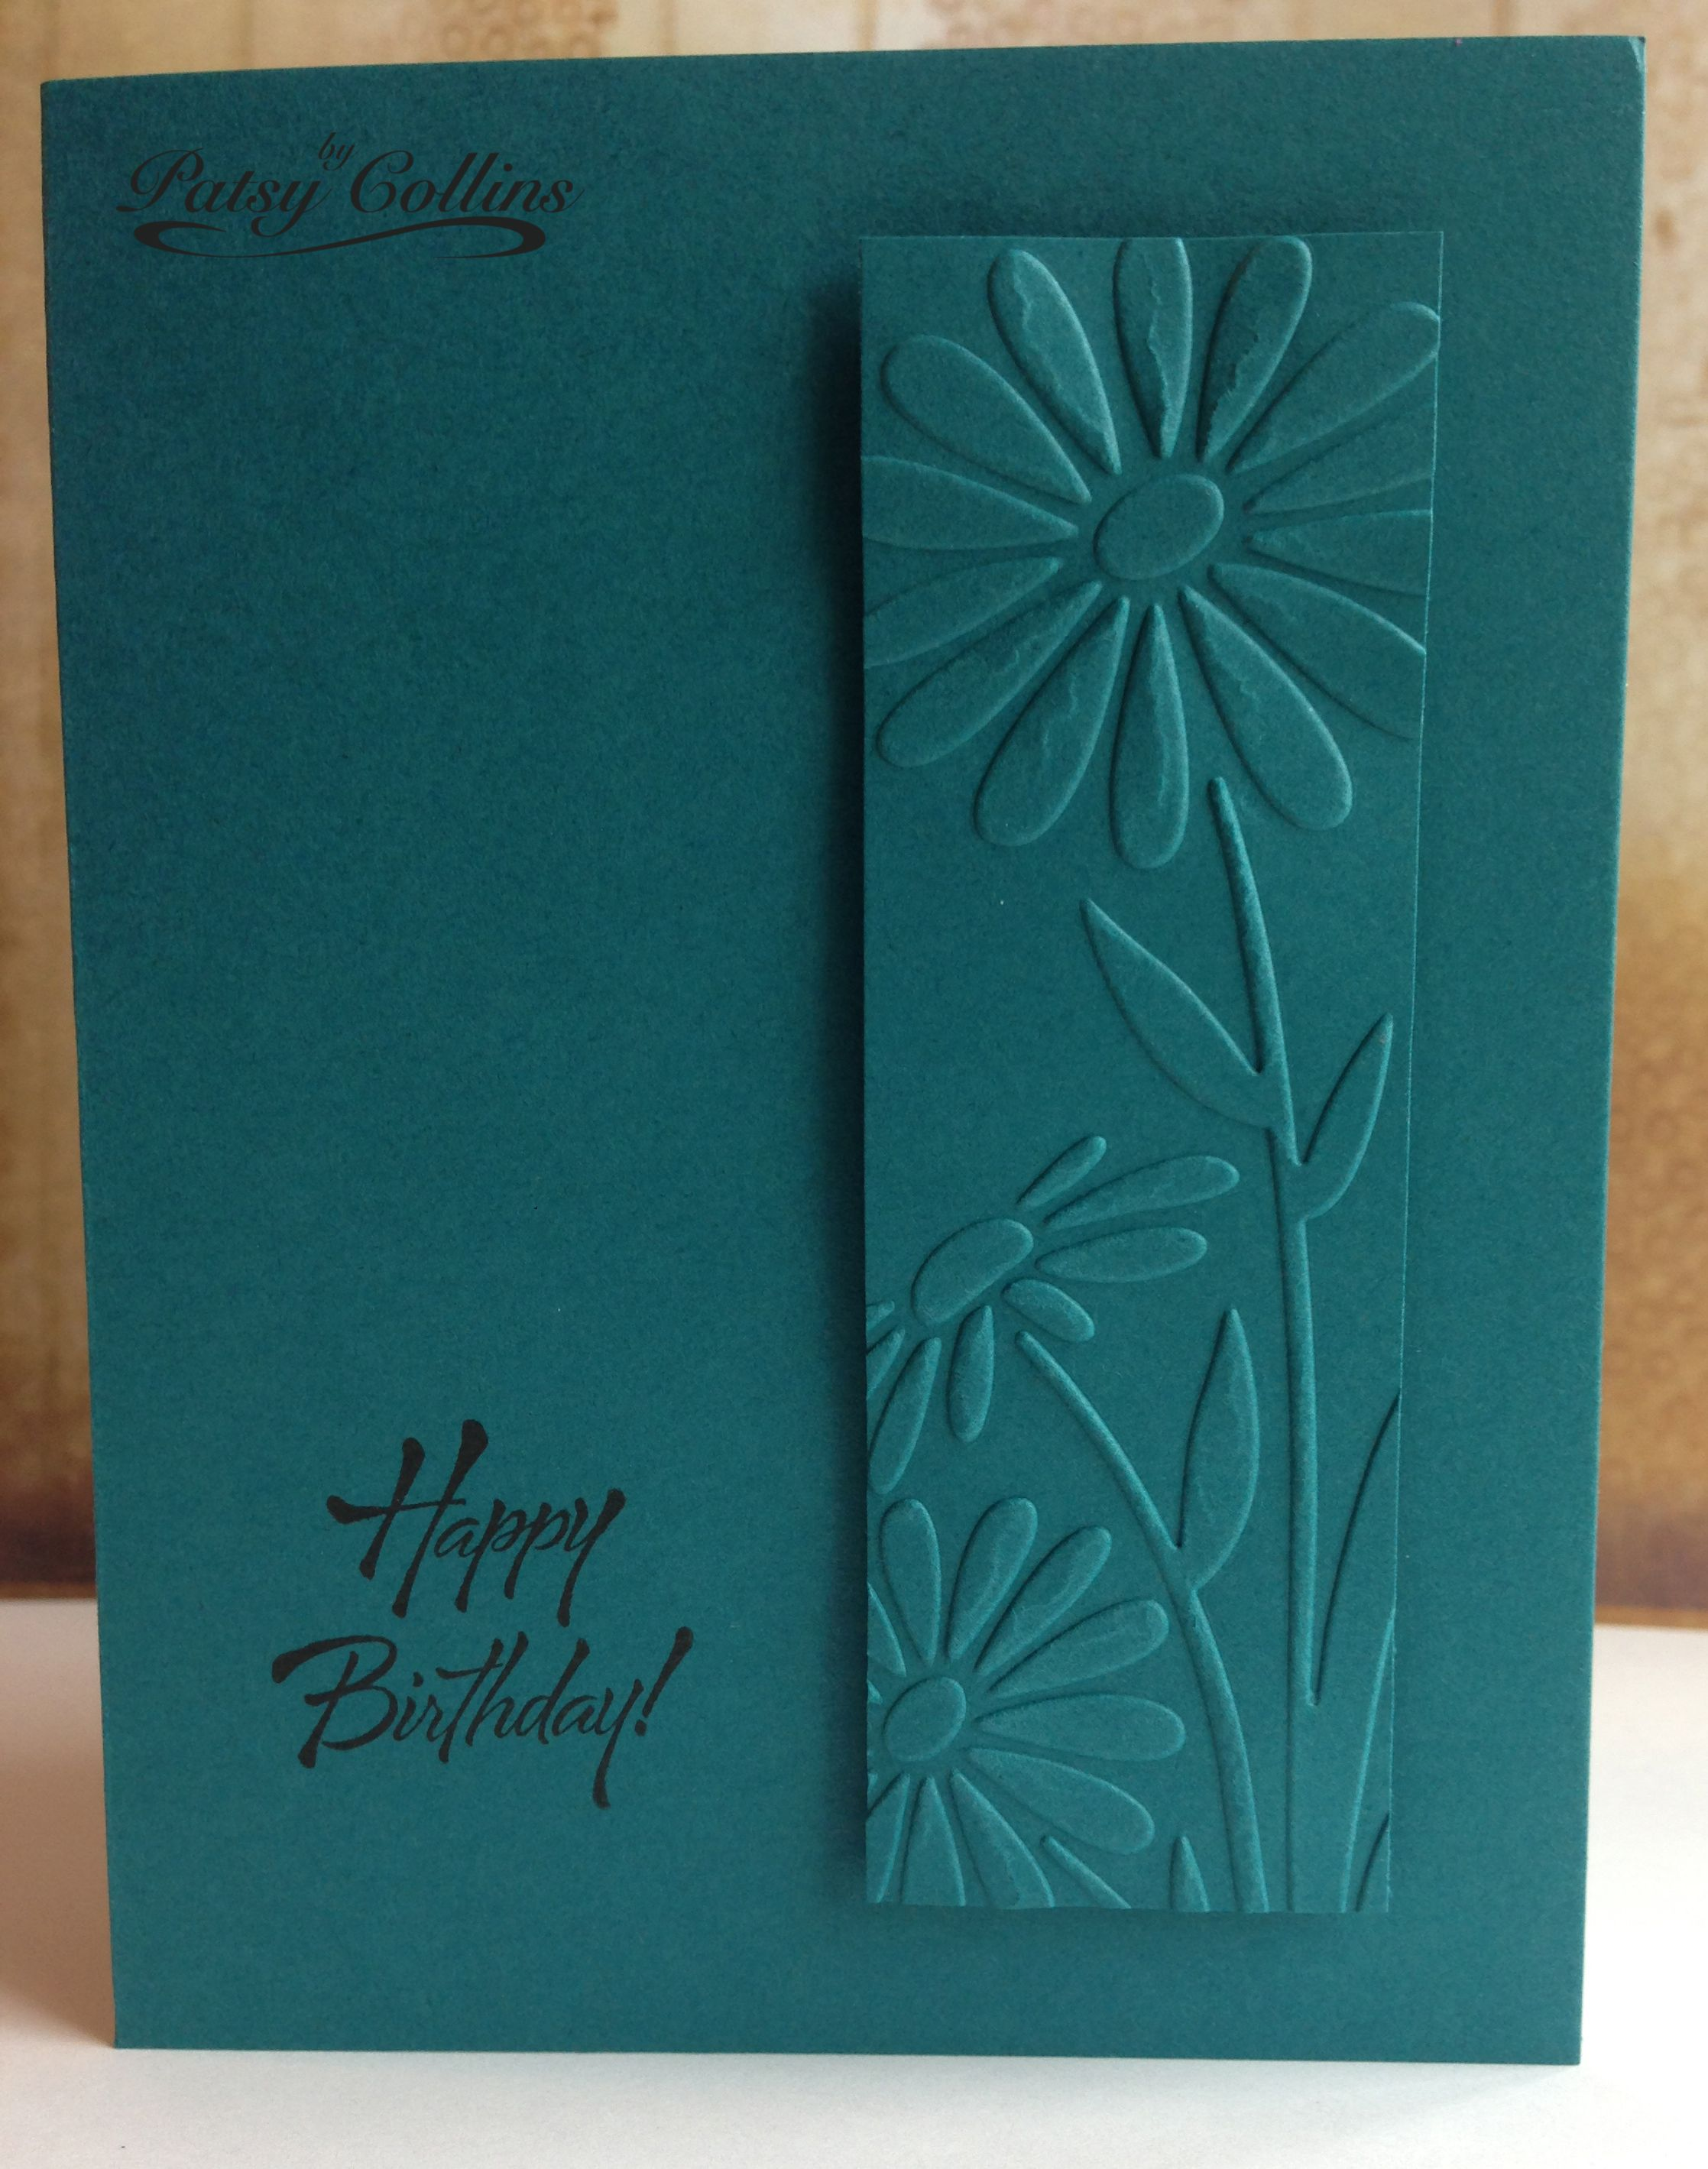 By Patsy Collins Dry Embossing As The Focal Image Folder Is Darice